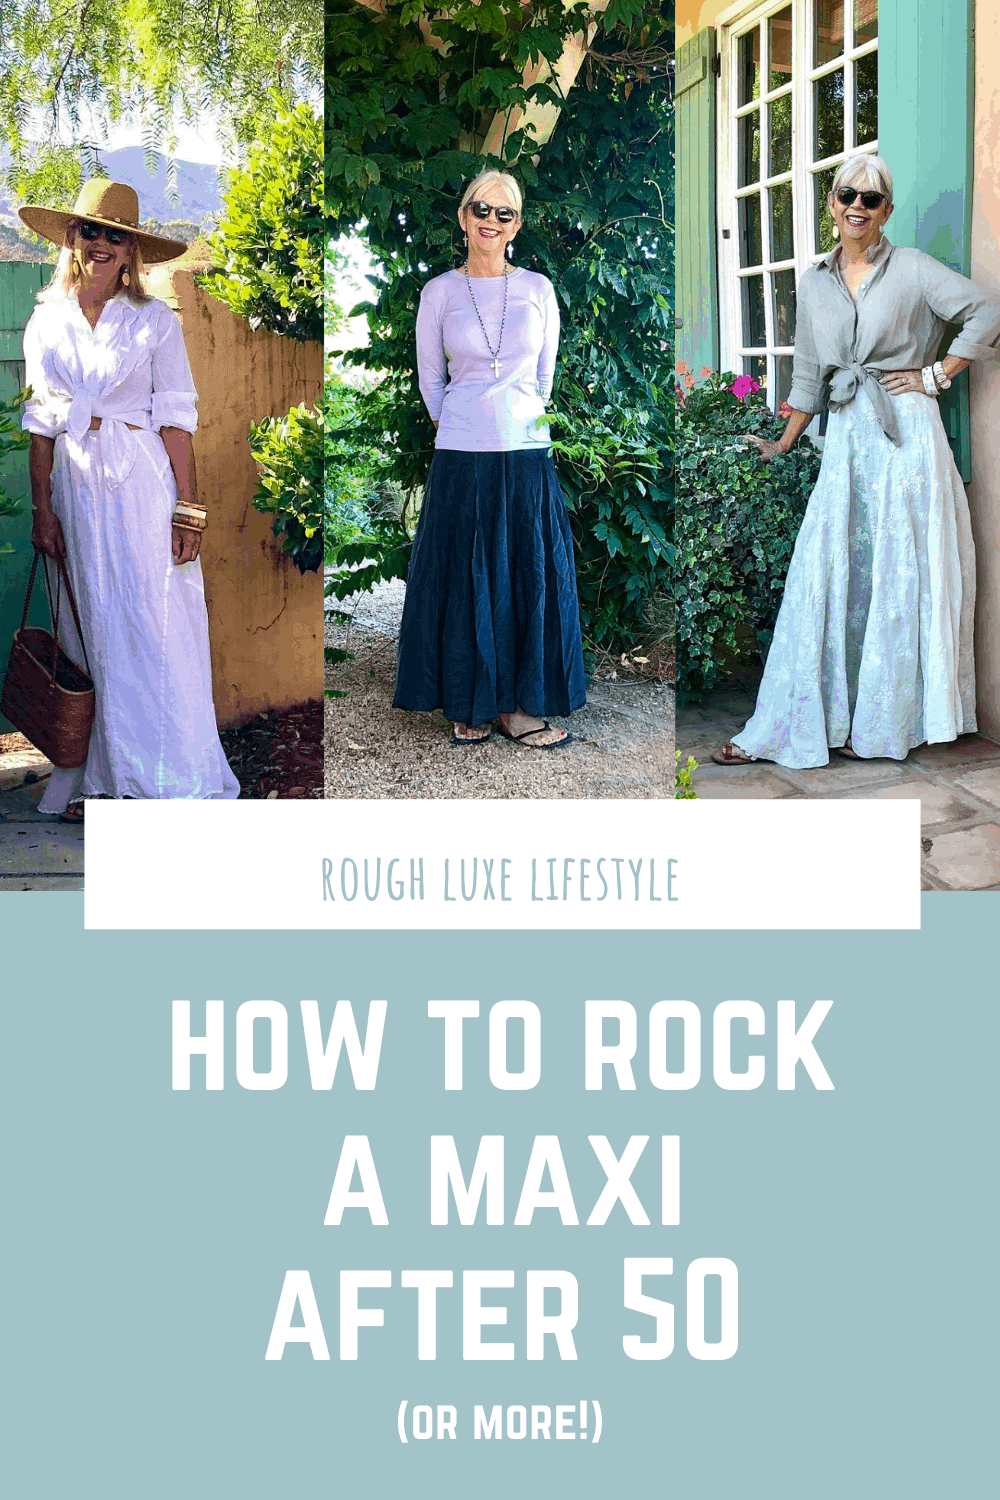 How to Rock a Maxi Skirt After 50